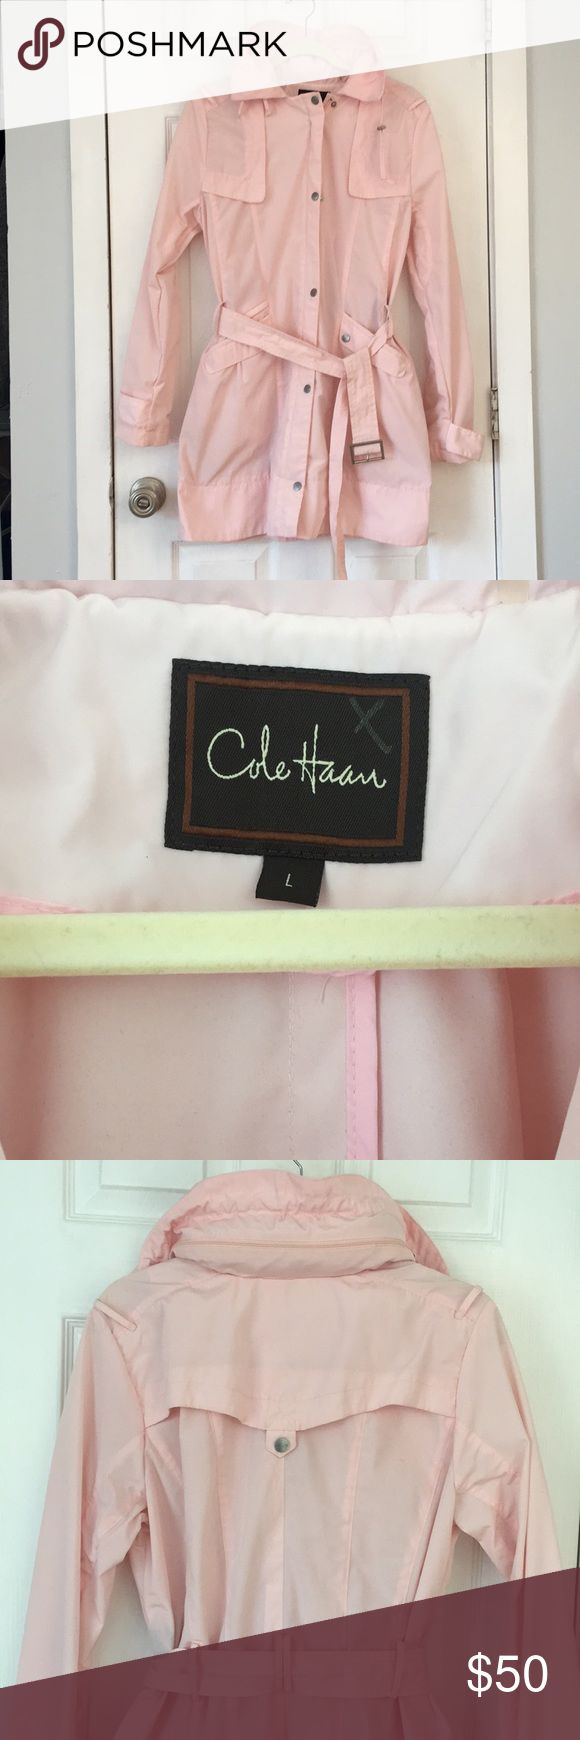 Cole Haan Rain Coat -Trench Light pink Cole Haan rain coat in a trench coat style. Very light weight and has a packable hood that can be rolled up into the collar. Size L, also has belt to cinch the waist in. Cole Haan Jackets & Coats Trench Coats